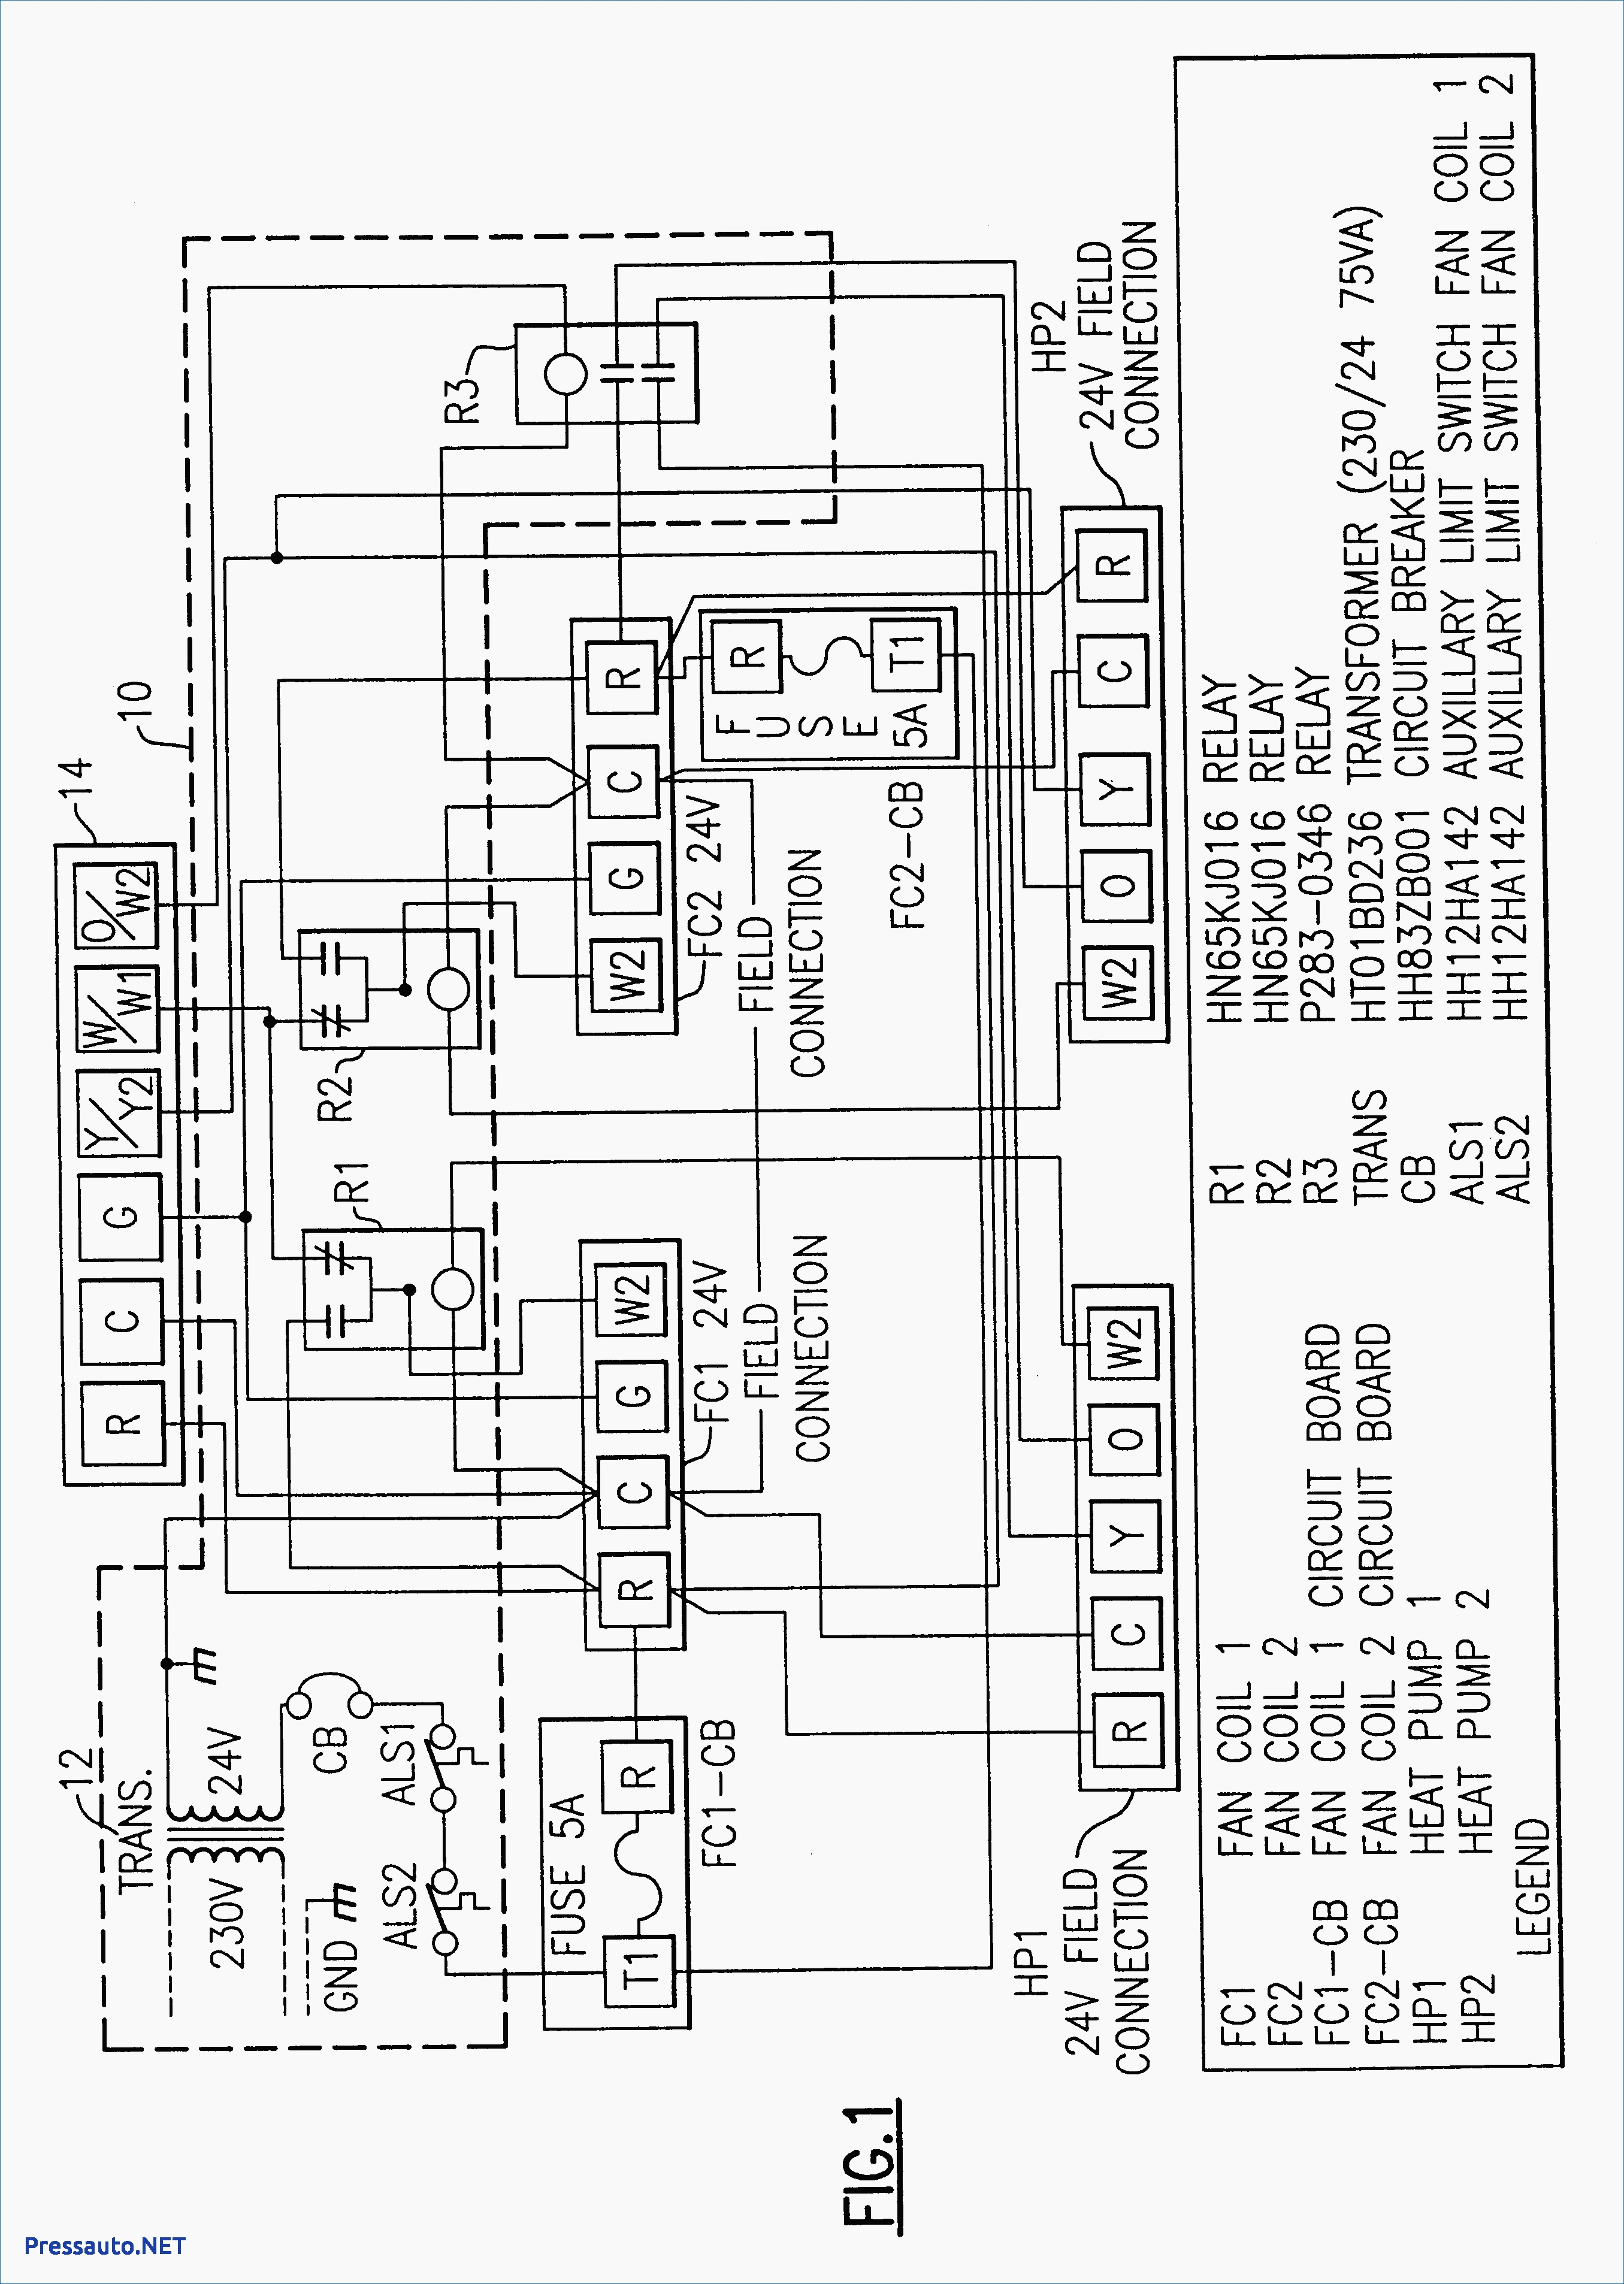 Fujitsu Mini Split Heat Pump Wiring Diagram | Free Wiring